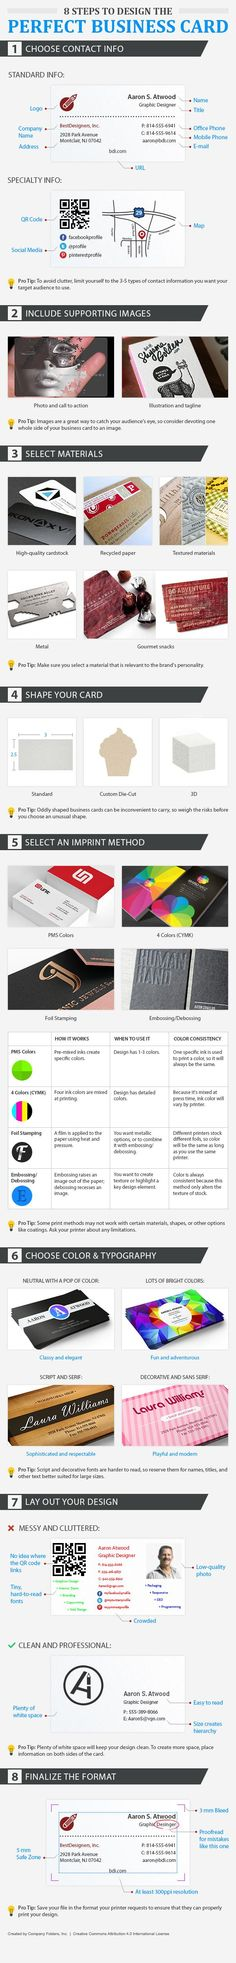 8 steps to design the perfect business card by Company Folders